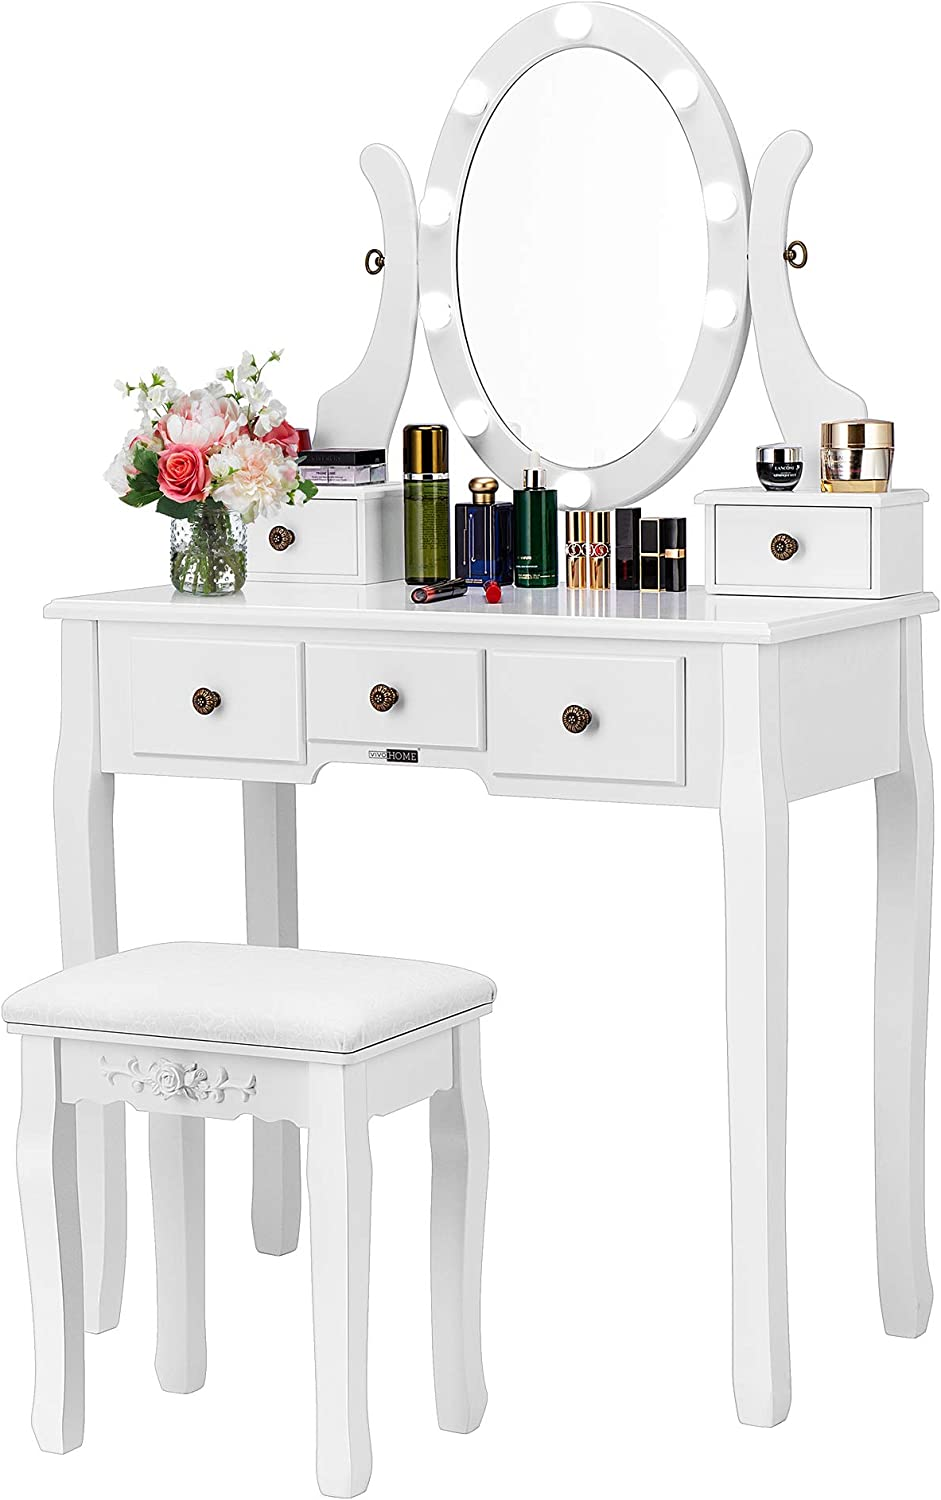 Amazon Com Vivohome Makeup Vanity Set With 10 Led Bulbs Dressing Table With 360 Rotating Lighted Mirror And Cushioned Stool White Kitchen Dining